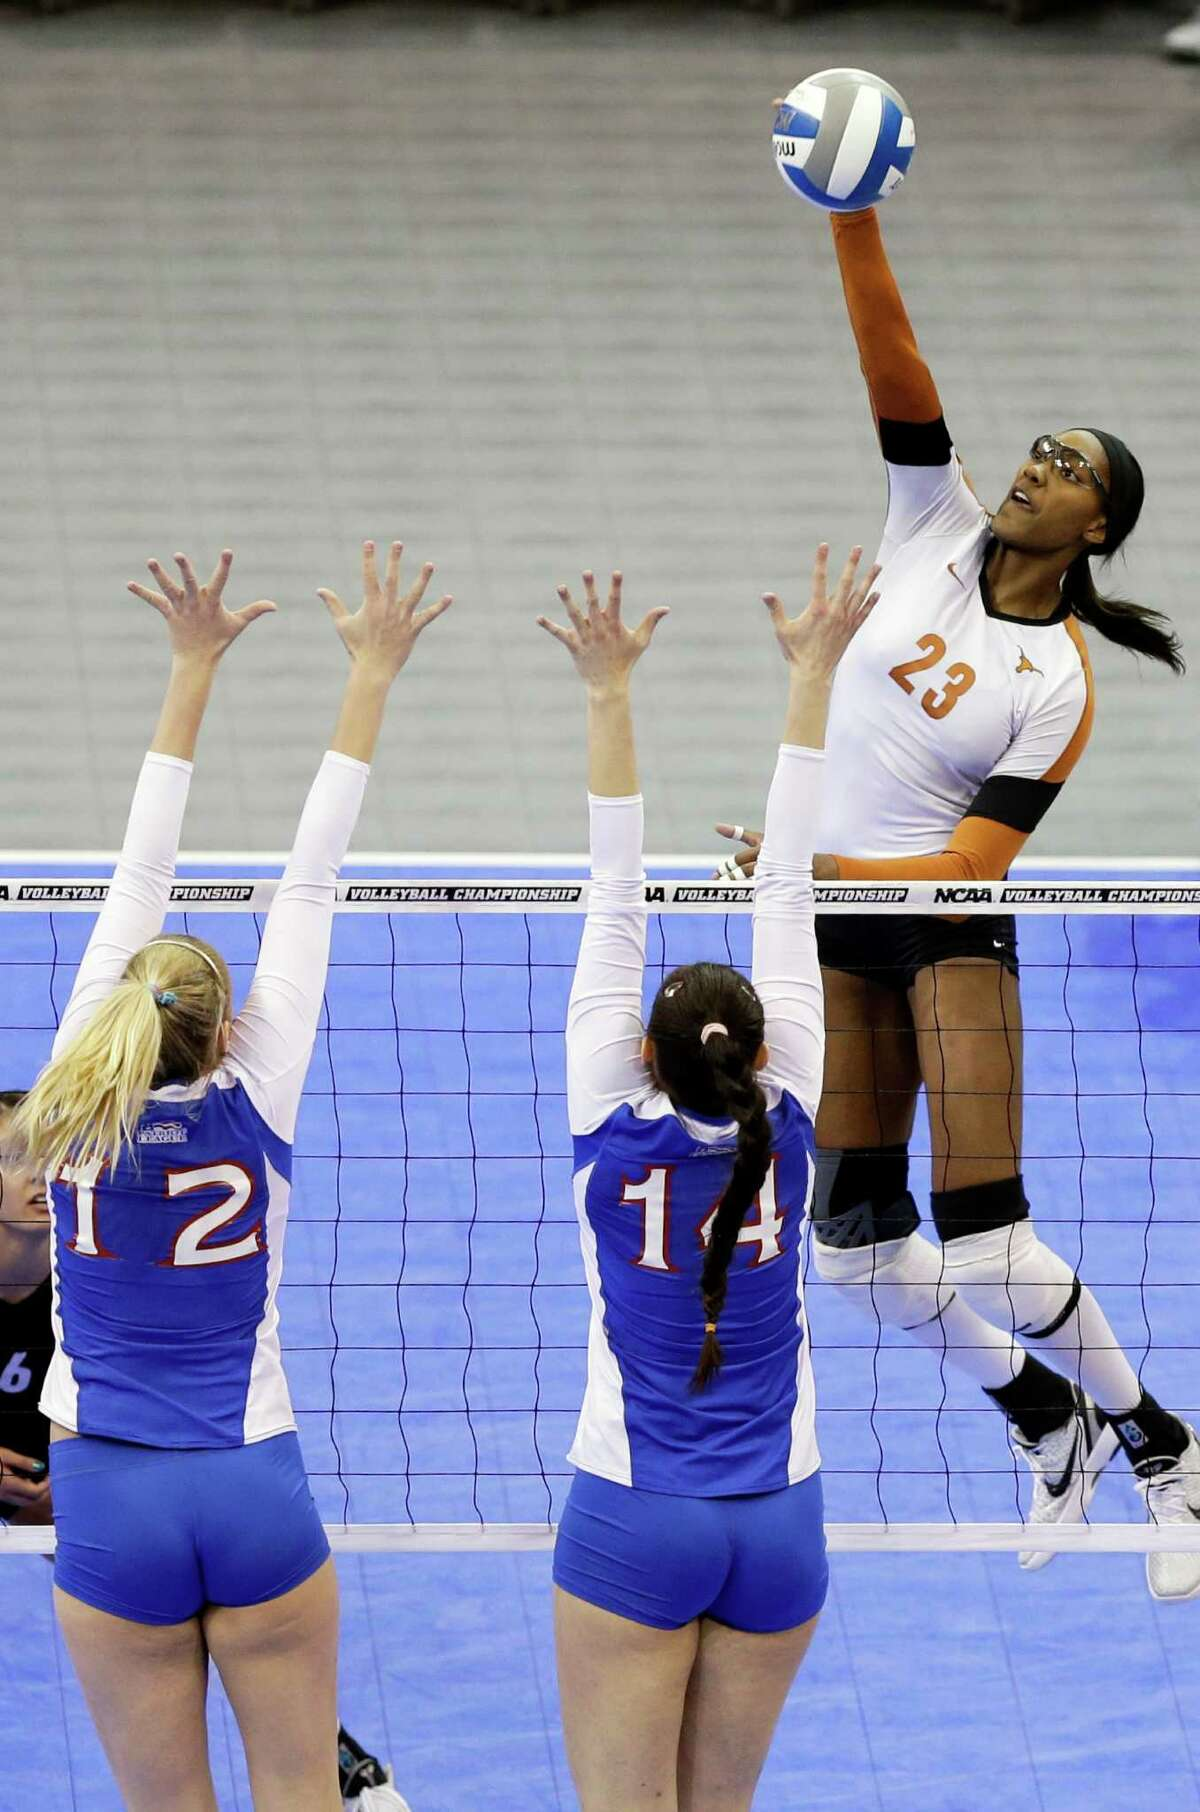 Bailey Webster, right, is the most experienced player as UT tries to repeat as national champion.